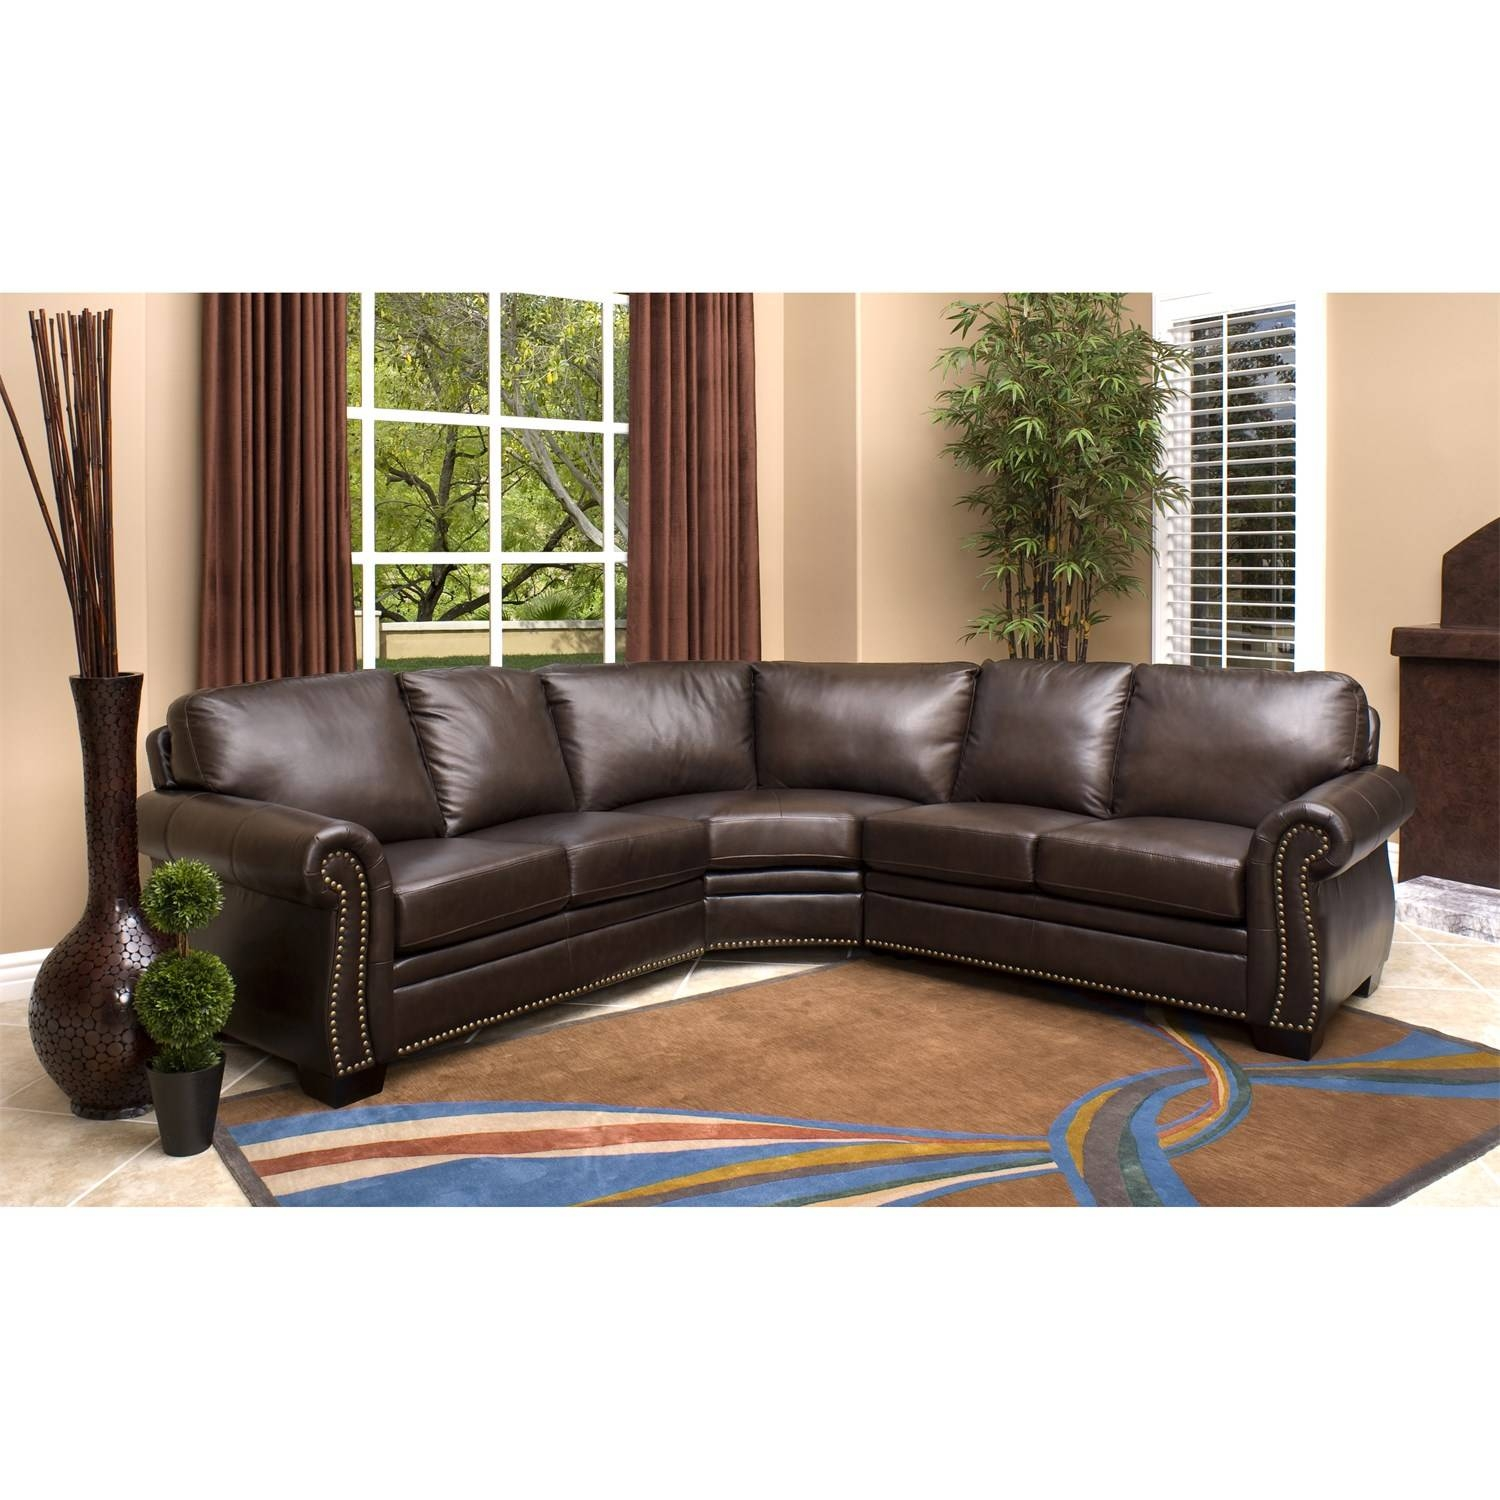 Abbyson Living Ci-N410-Brn Oxford Italian Leather Sectional Sofa throughout Abbyson Living Sectional Sofas (Image 2 of 15)